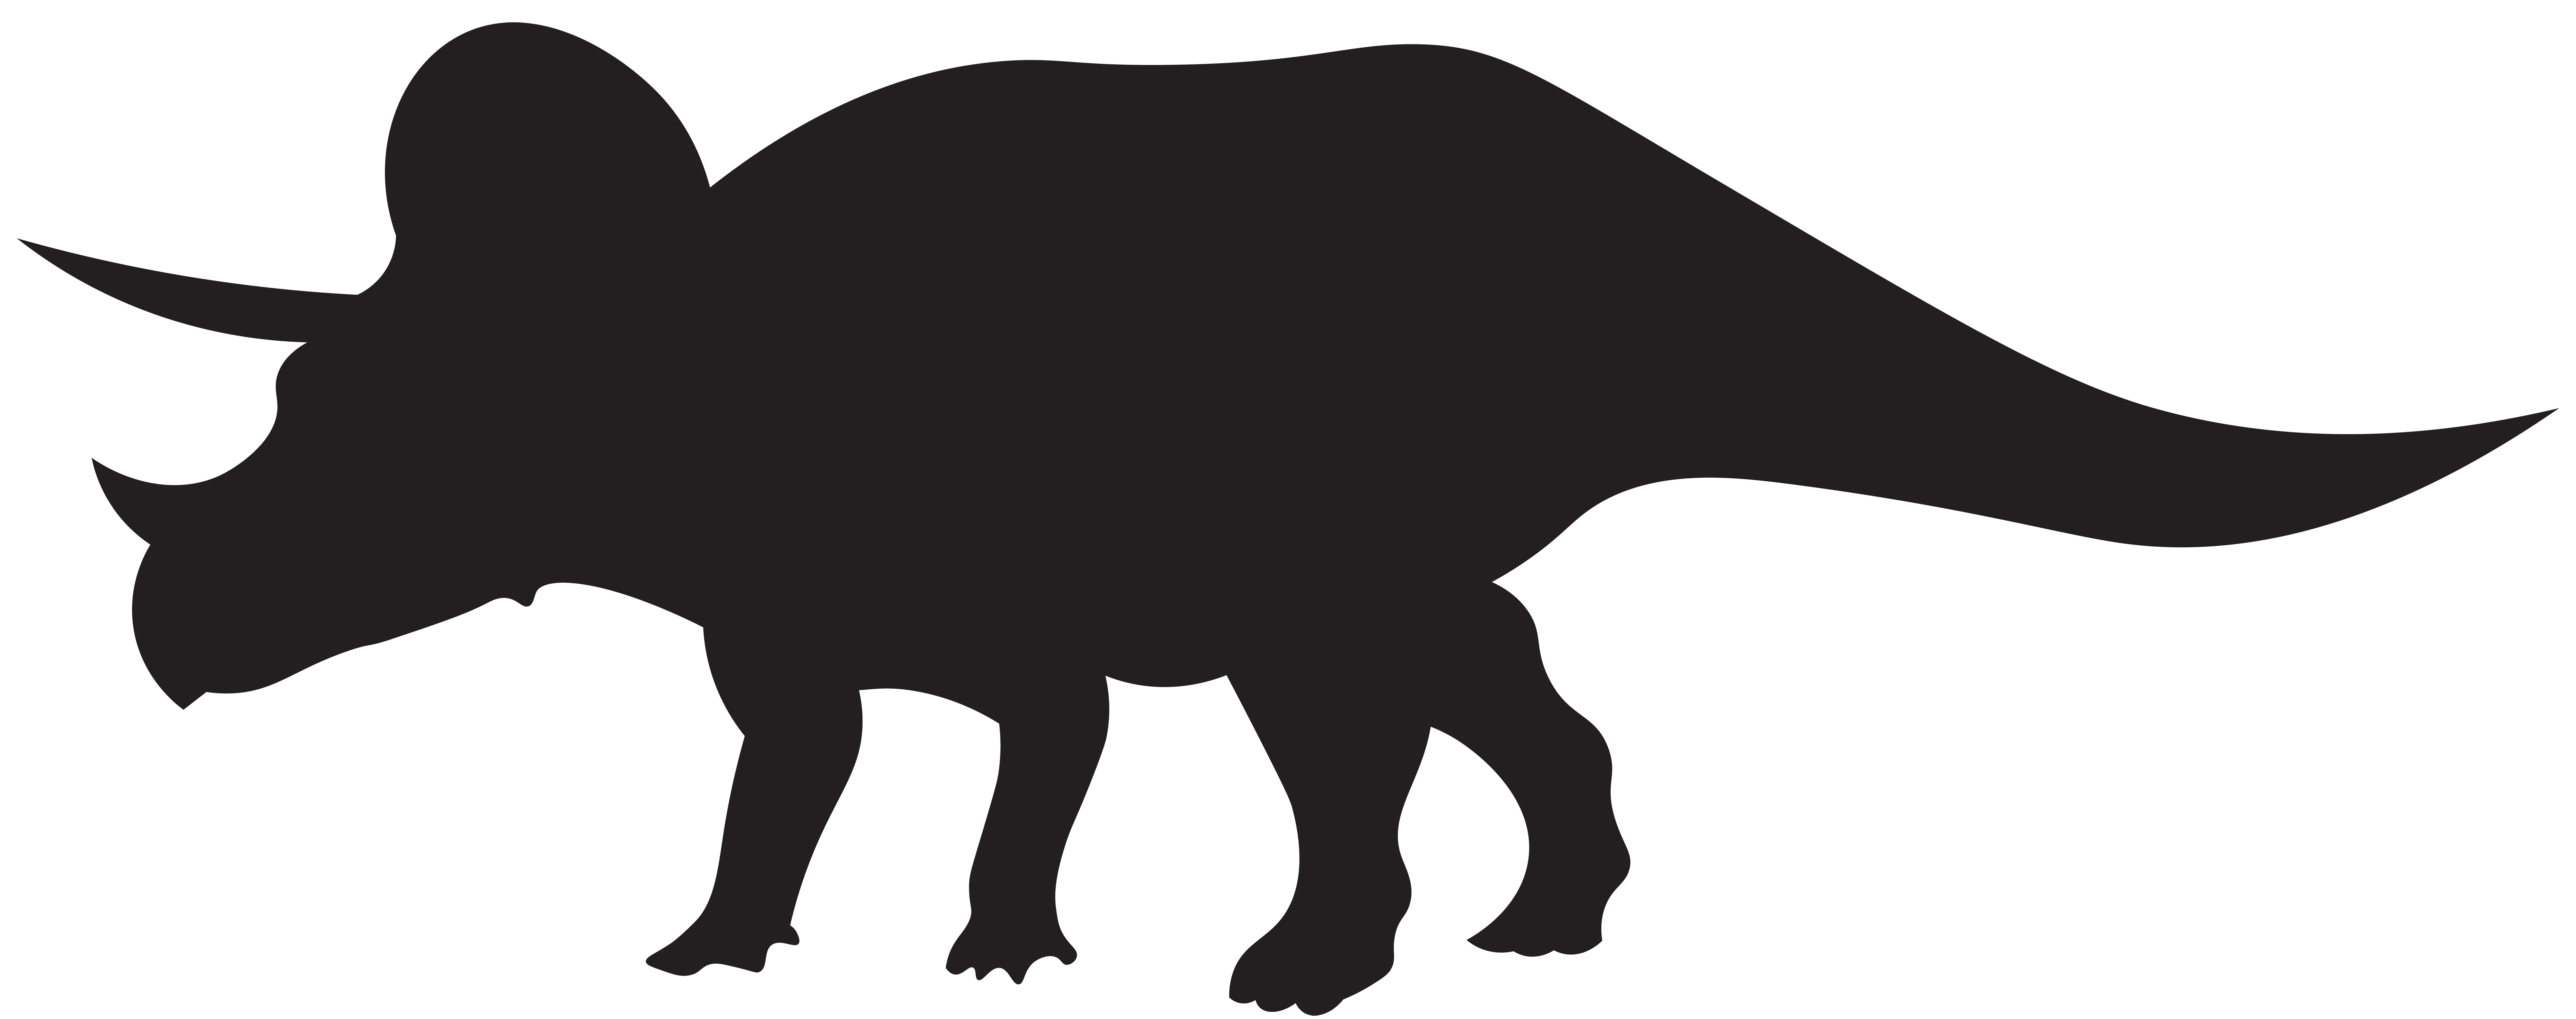 Dinosaur halloween clipart black and white download Dinosaurs Triceratops Silhouette PNG Clip Art Image | Gallery ... black and white download